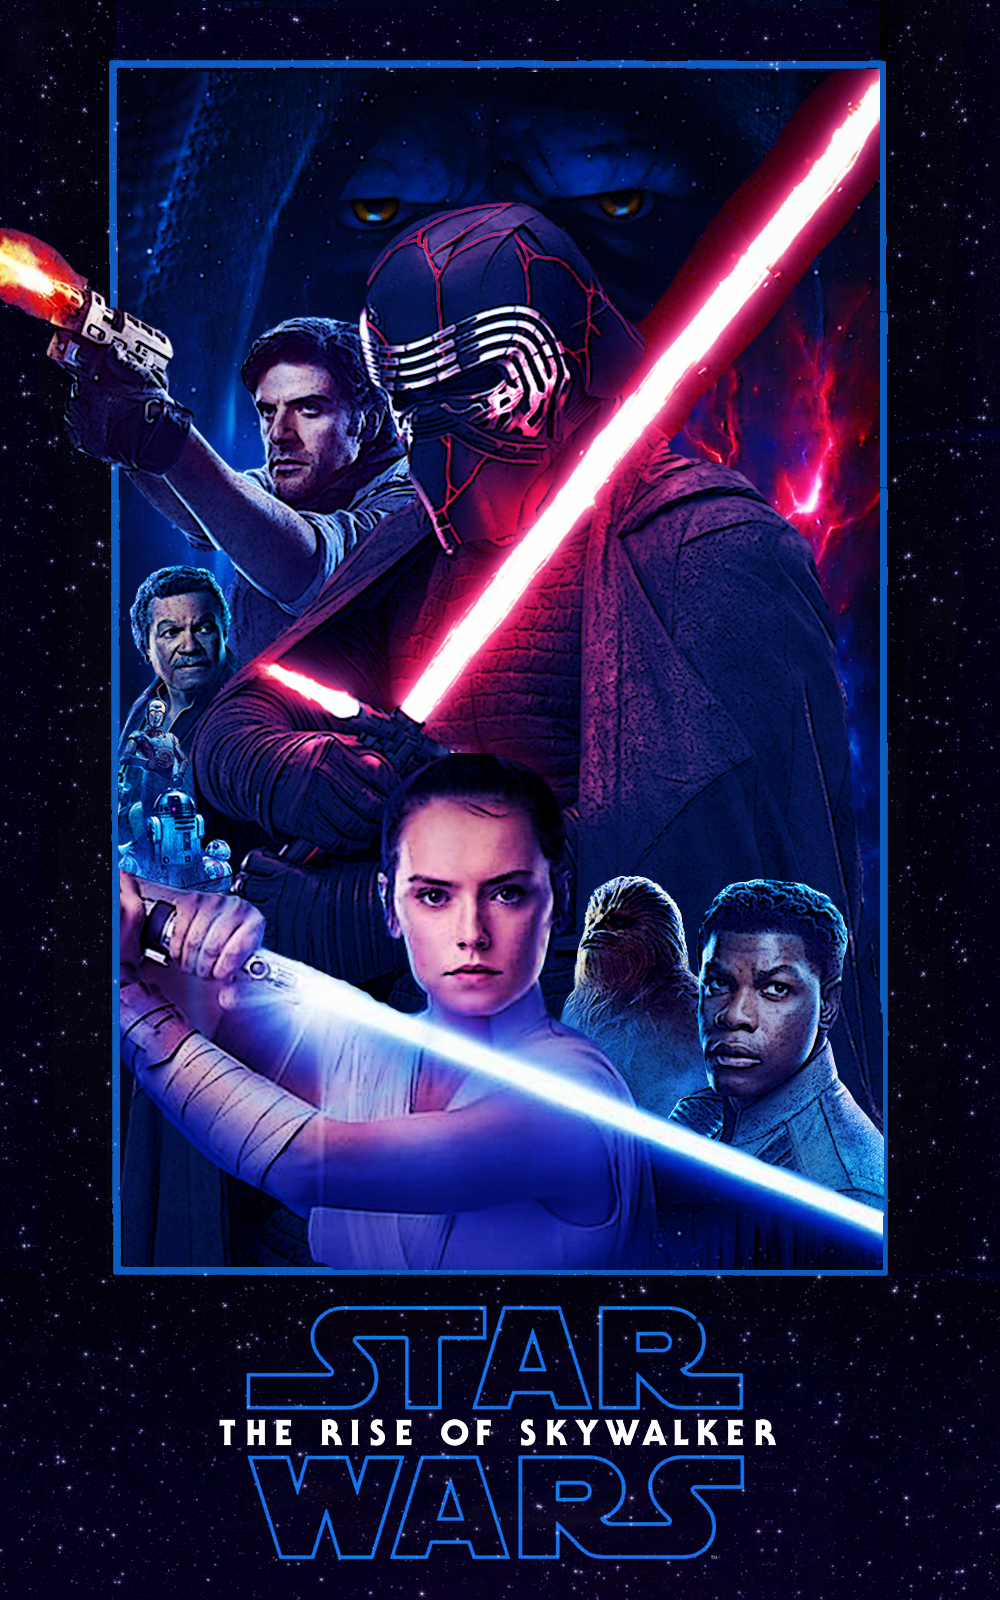 Star Wars The Rise Of Skywalker Movie Poster By Dcomp On Deviantart